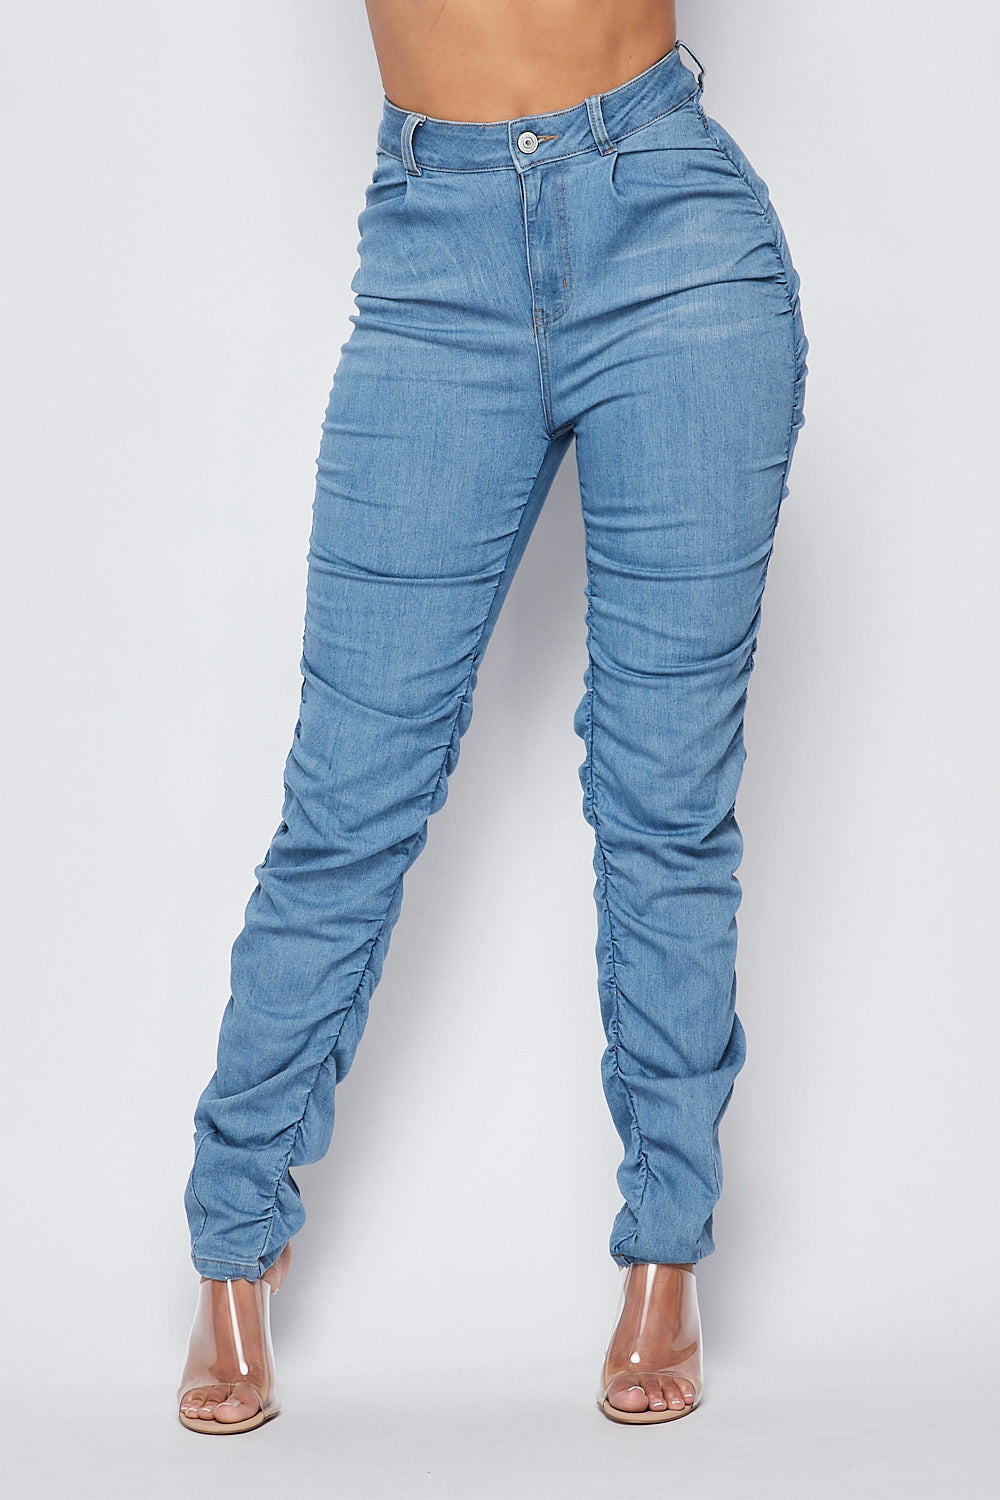 Must Have High Waist Scrunched side Jeans-Light Wash - Fashion House USA